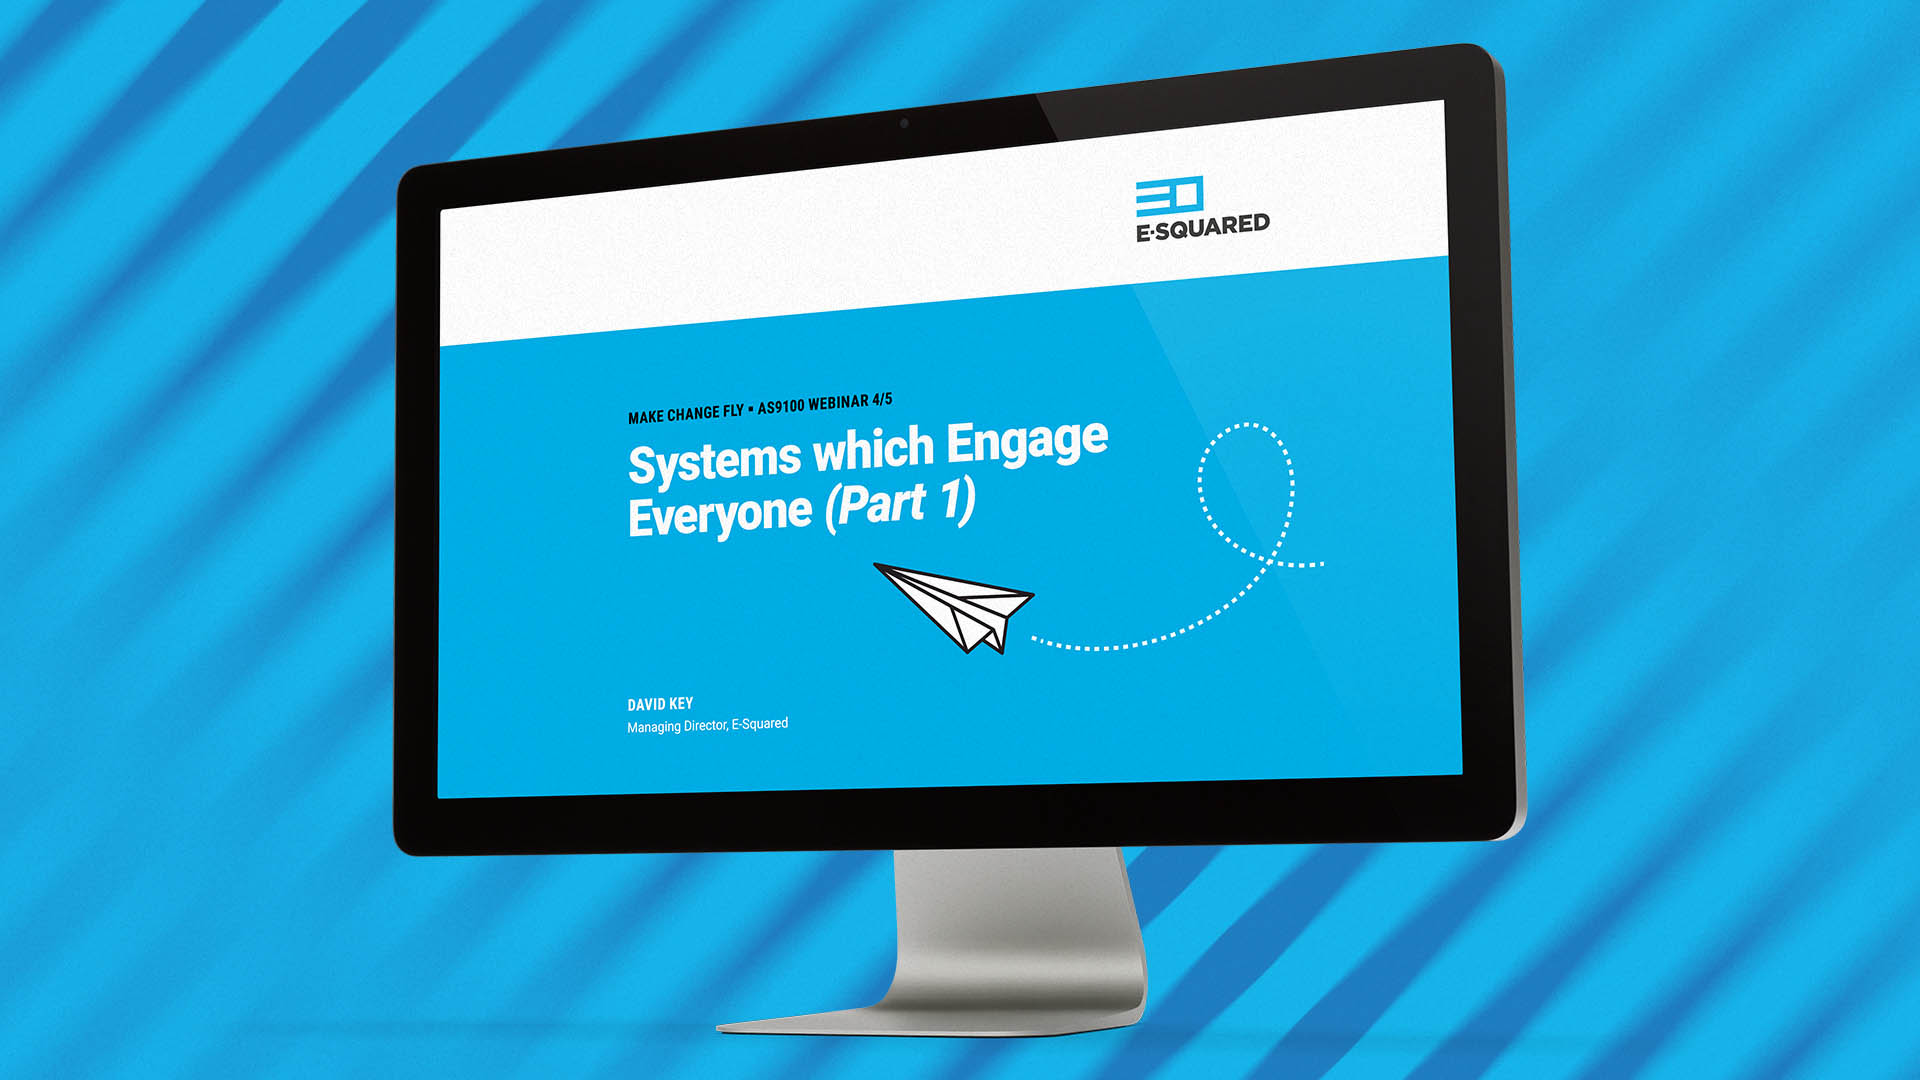 Systems which engage everyone